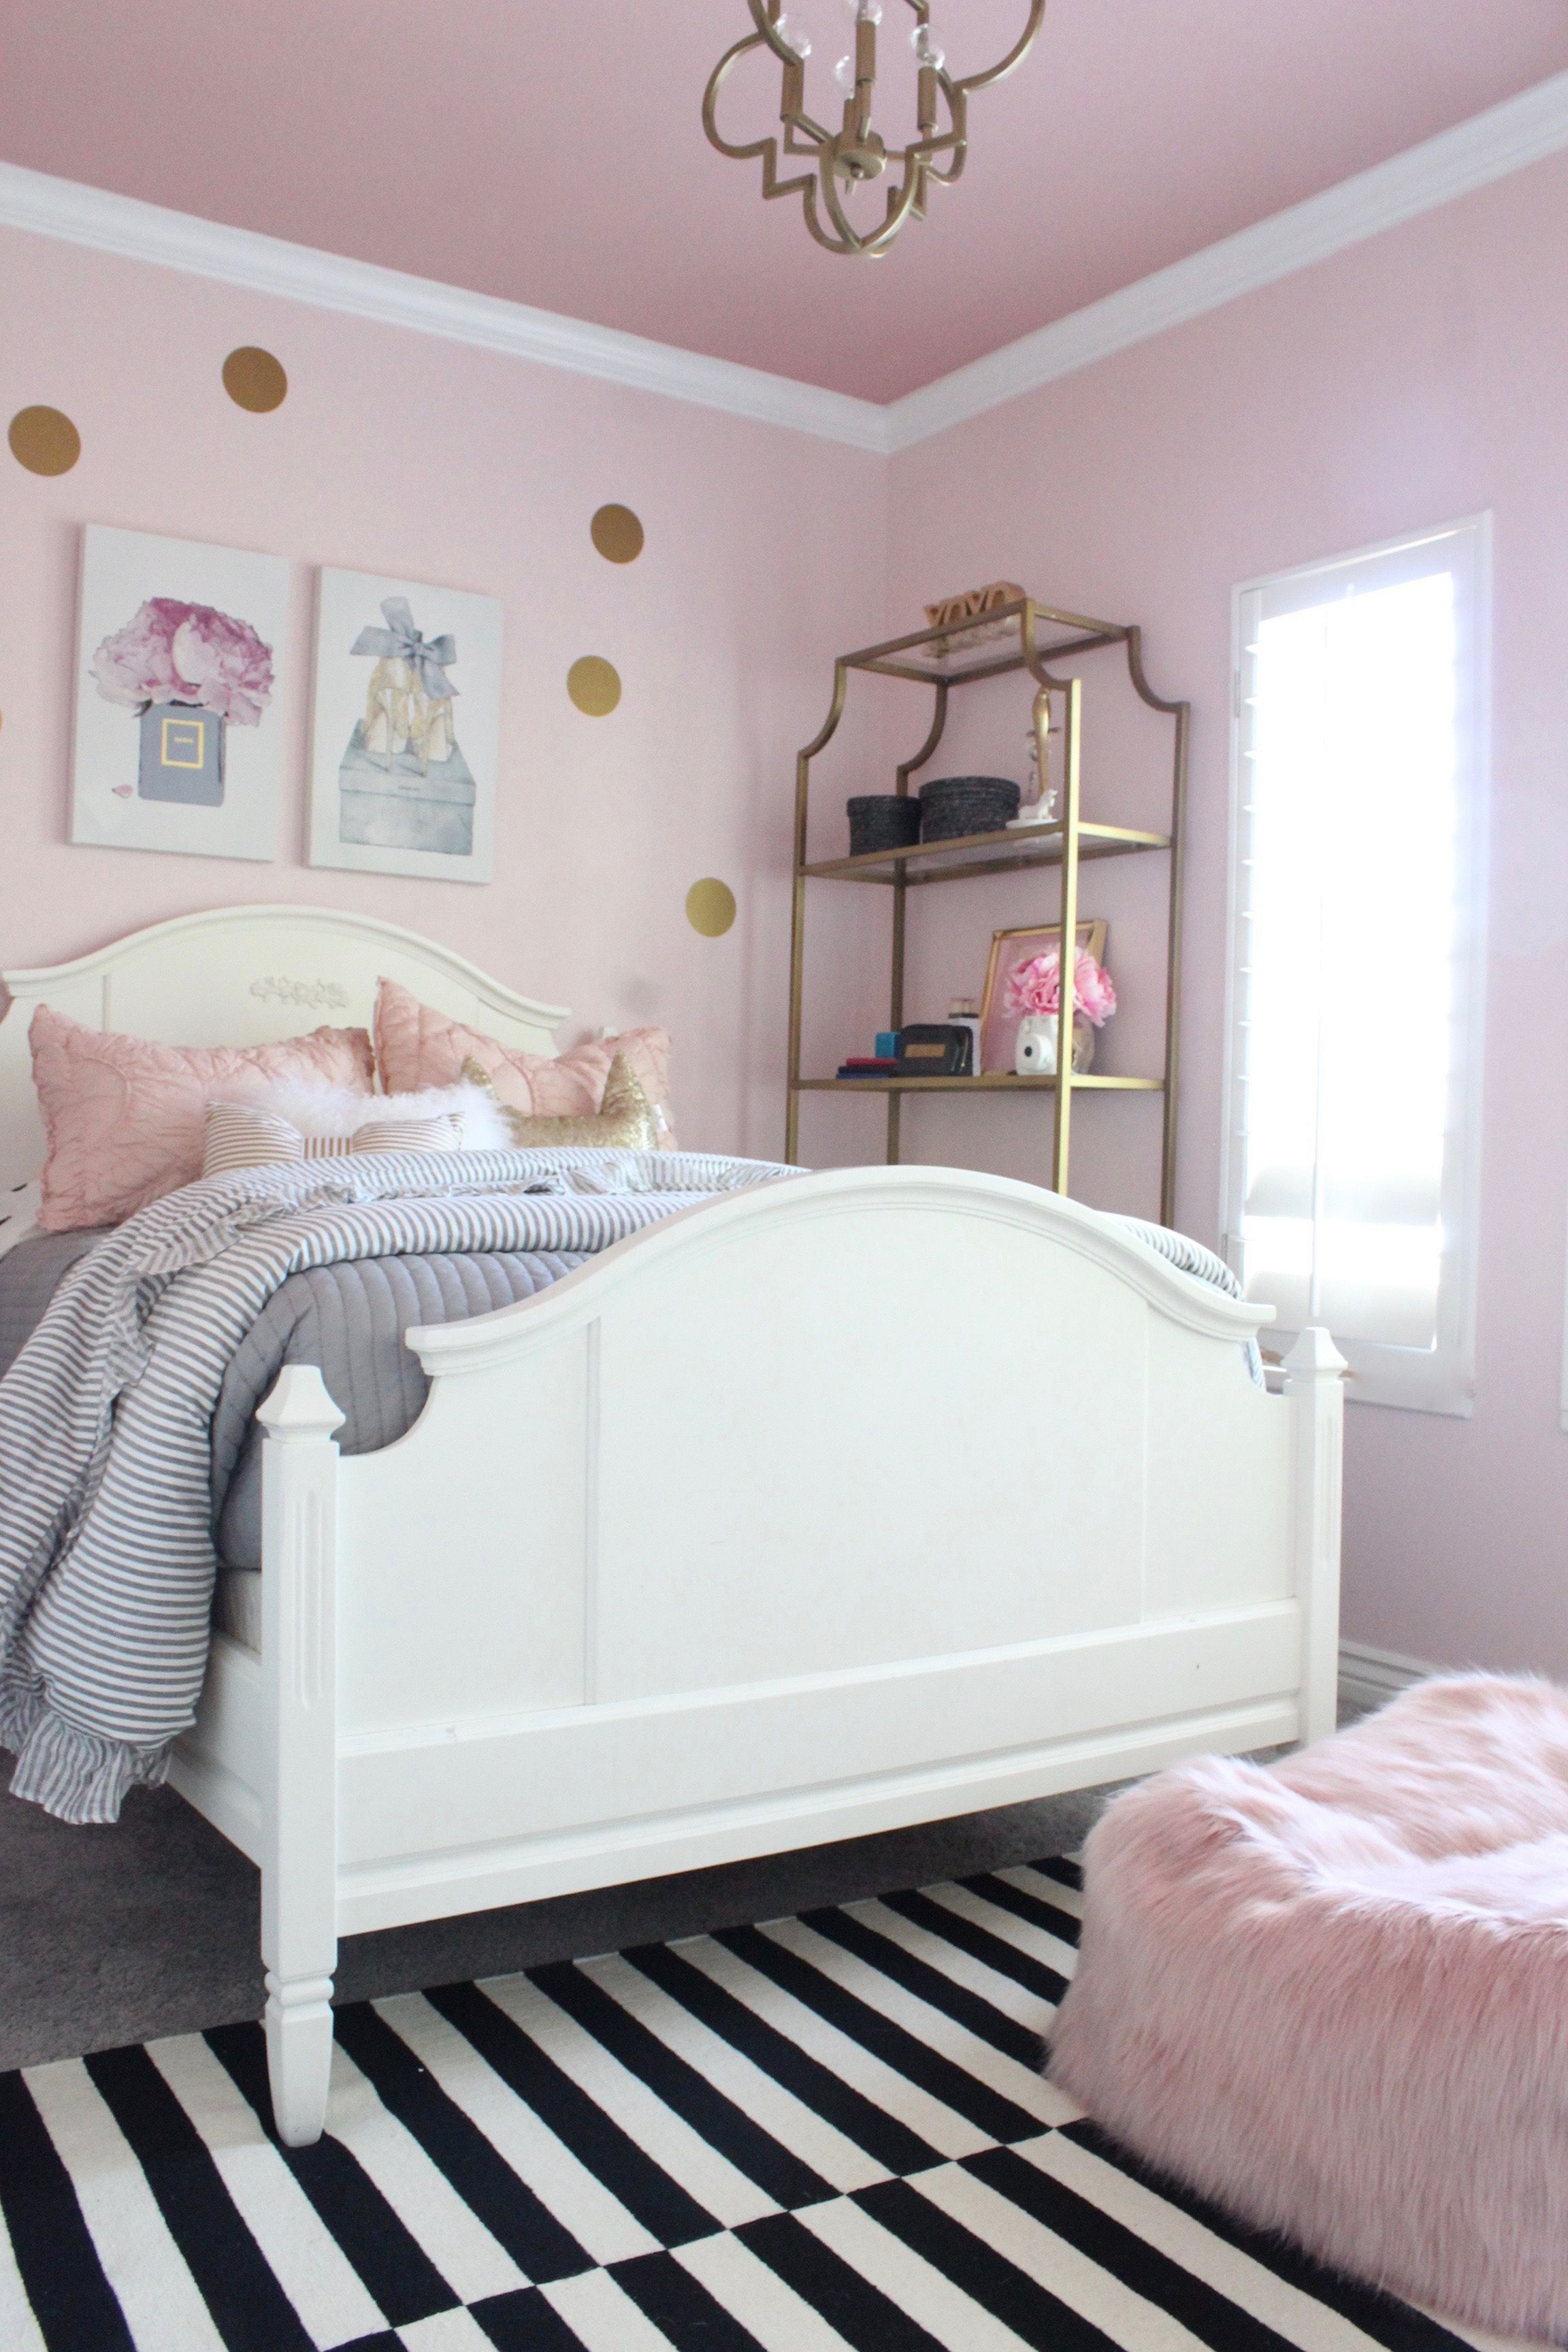 65 beautiful tween bedroom decorating ideas freshouz on cute bedroom decor ideas for teen romantic bedroom decorating with light and color id=62728